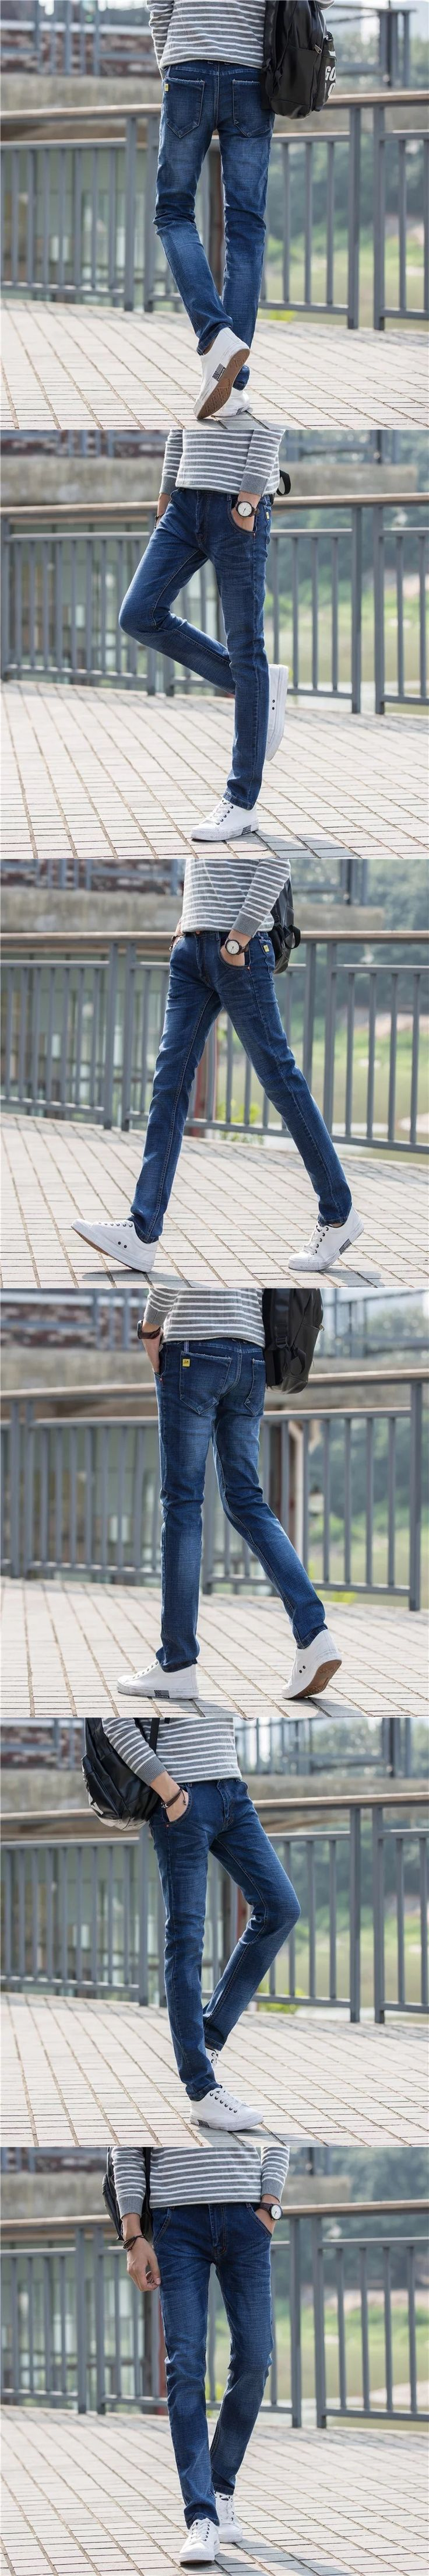 Spring and autumn male new jeans  mens jeans Fashion Brand Mens Skinny Jeans  Classical design YF009